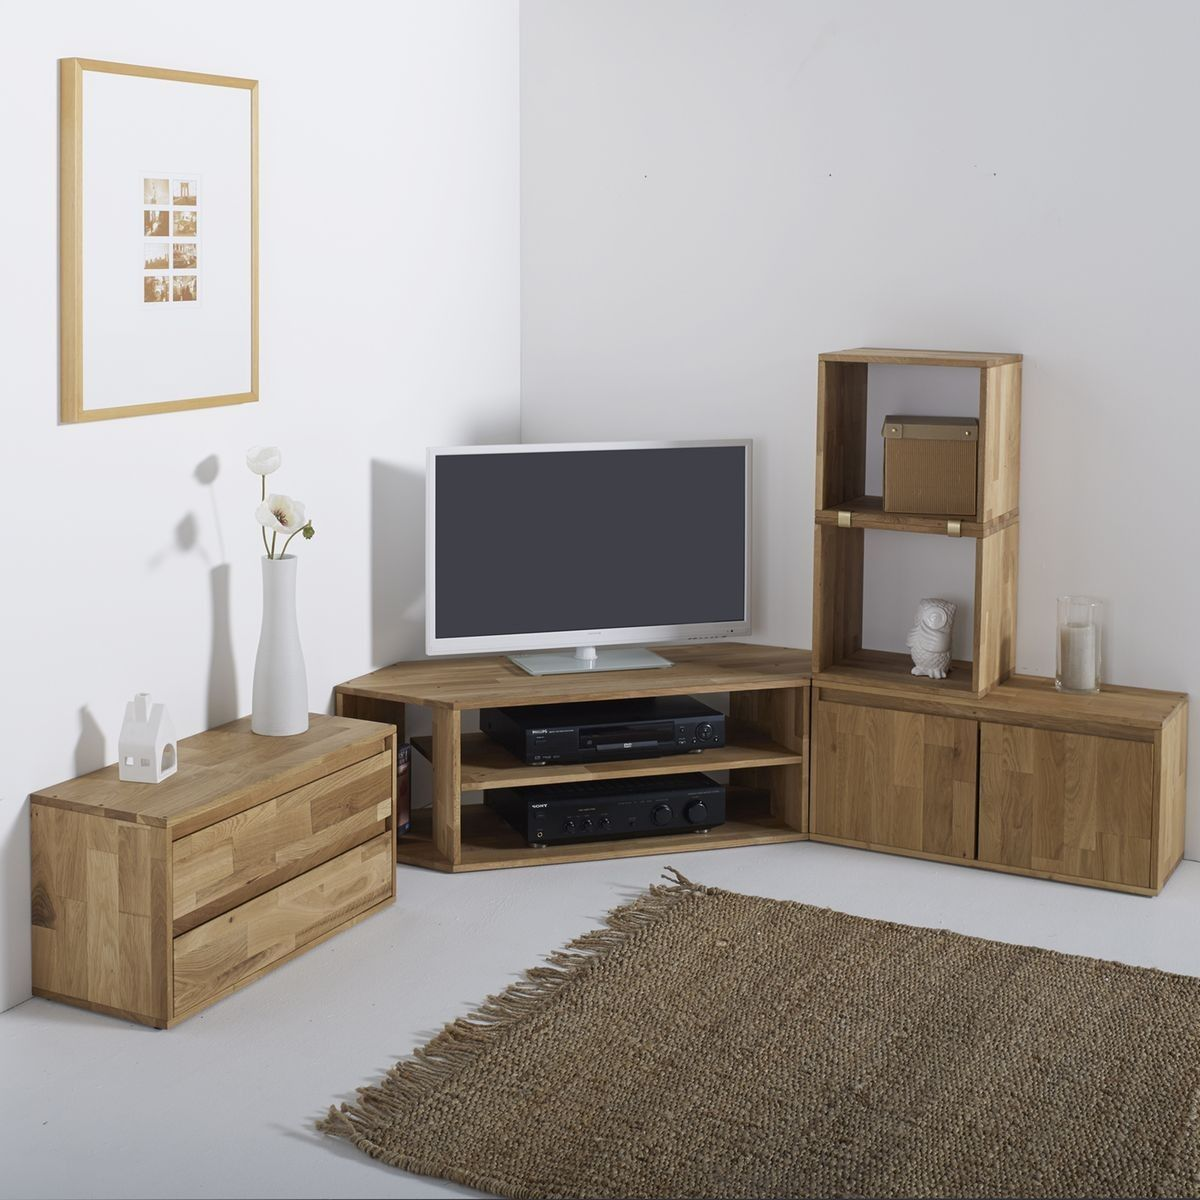 Meuble Tv D Angle Ch Ne Massif Edgar Corner Tv Tv Unit And Tvs # Meuble Tv Angle Chene Massif